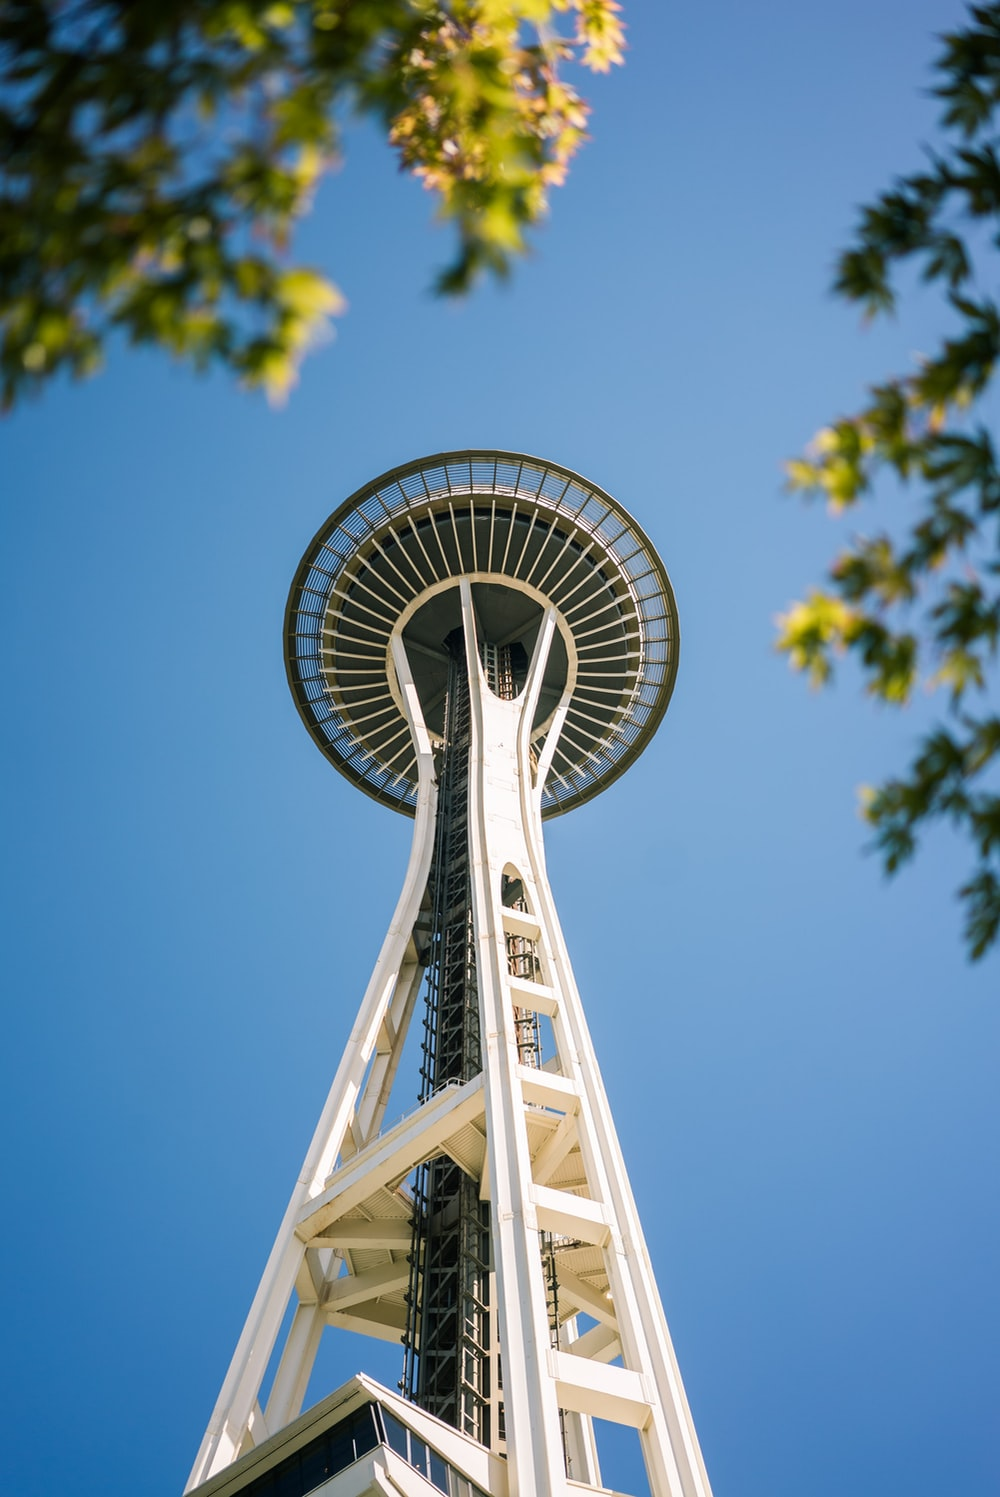 Seattlego To Www Bing Com: Seattle, Tree, Building And Architecture